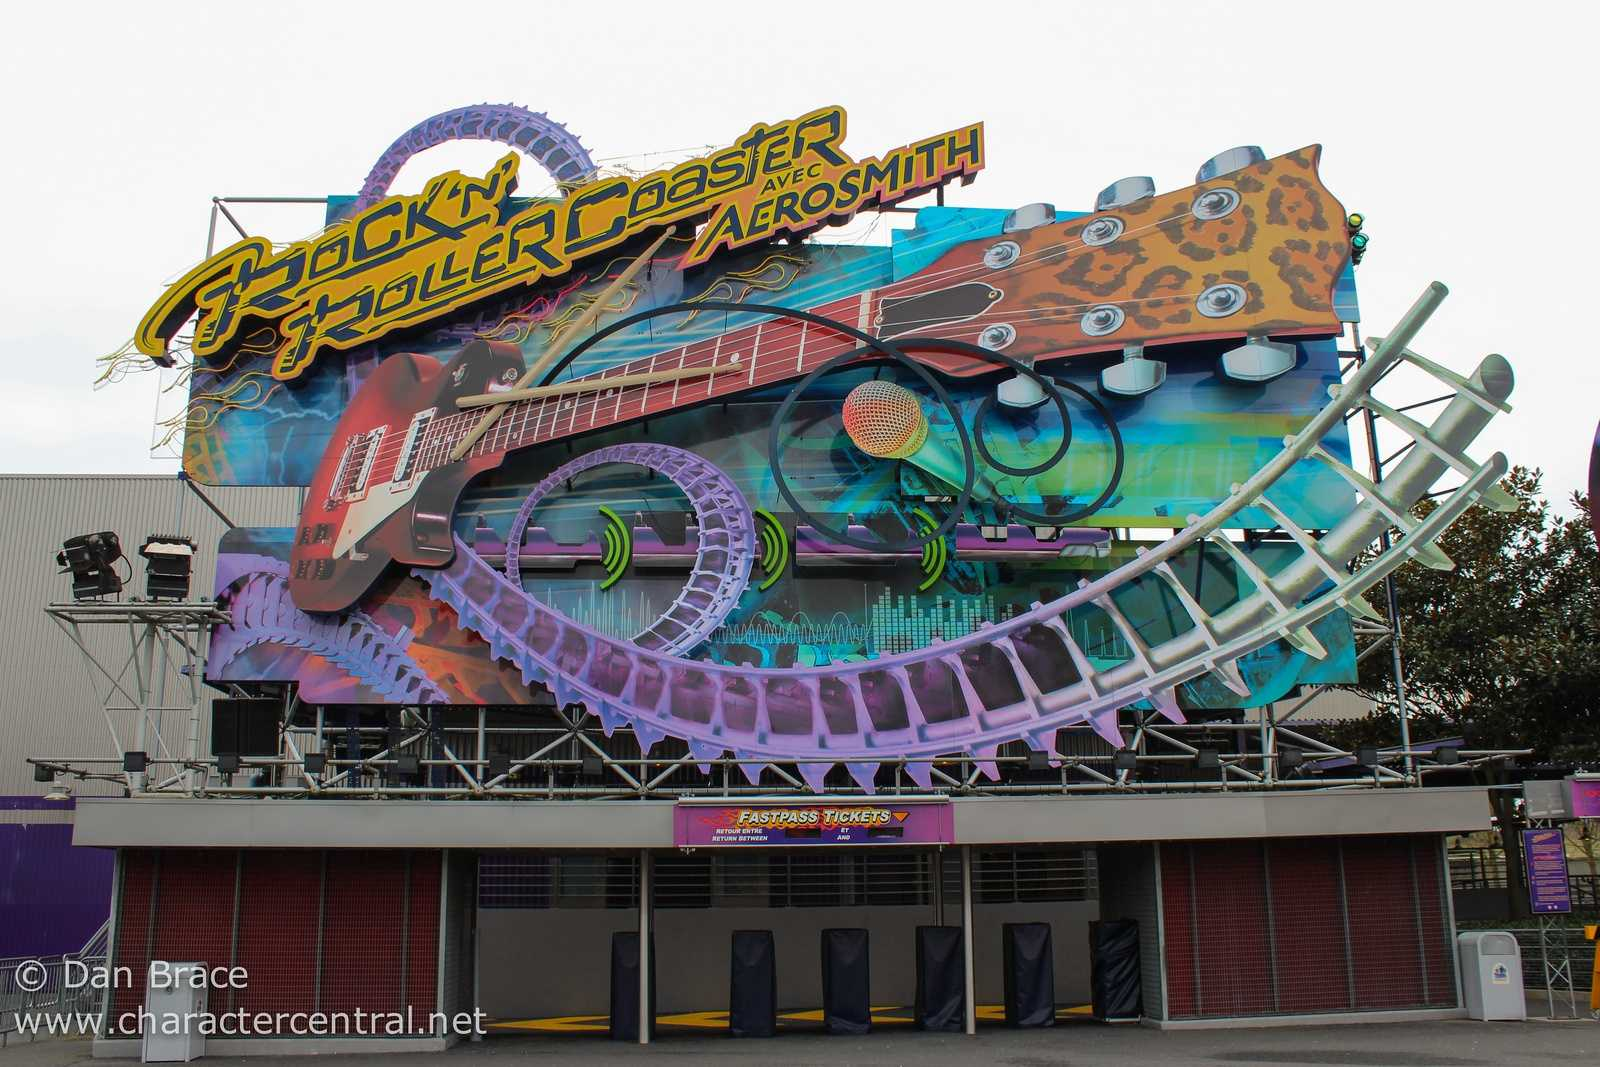 15 facts about Disney's Rock 'n' Roller Coaster